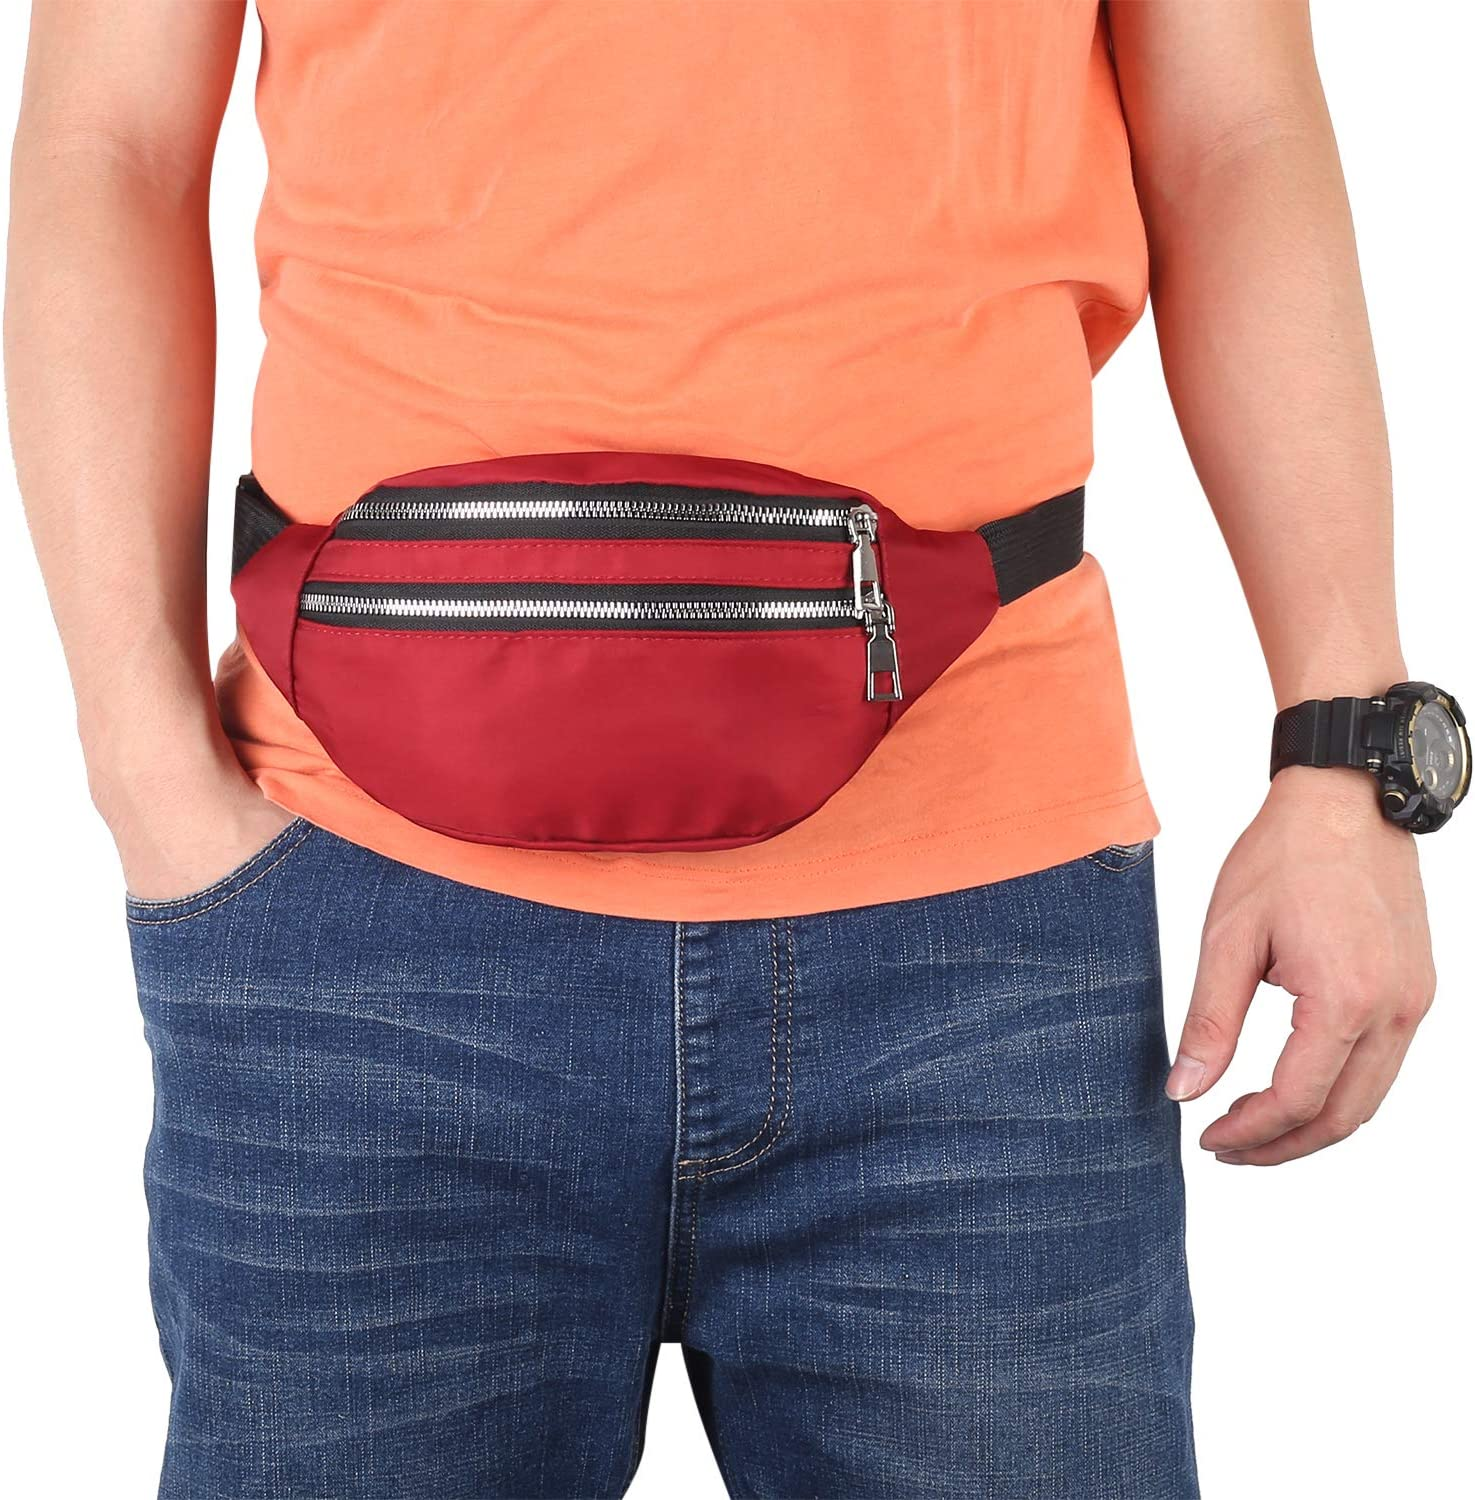 YUNHE Fanny Pack for Men /& Women Lightweight Waist Pack Pouch Bag with Adjustable Strap for Traveling Outdoors Sports Marathon Gym Casual Hiking Cycling Cashiers Box